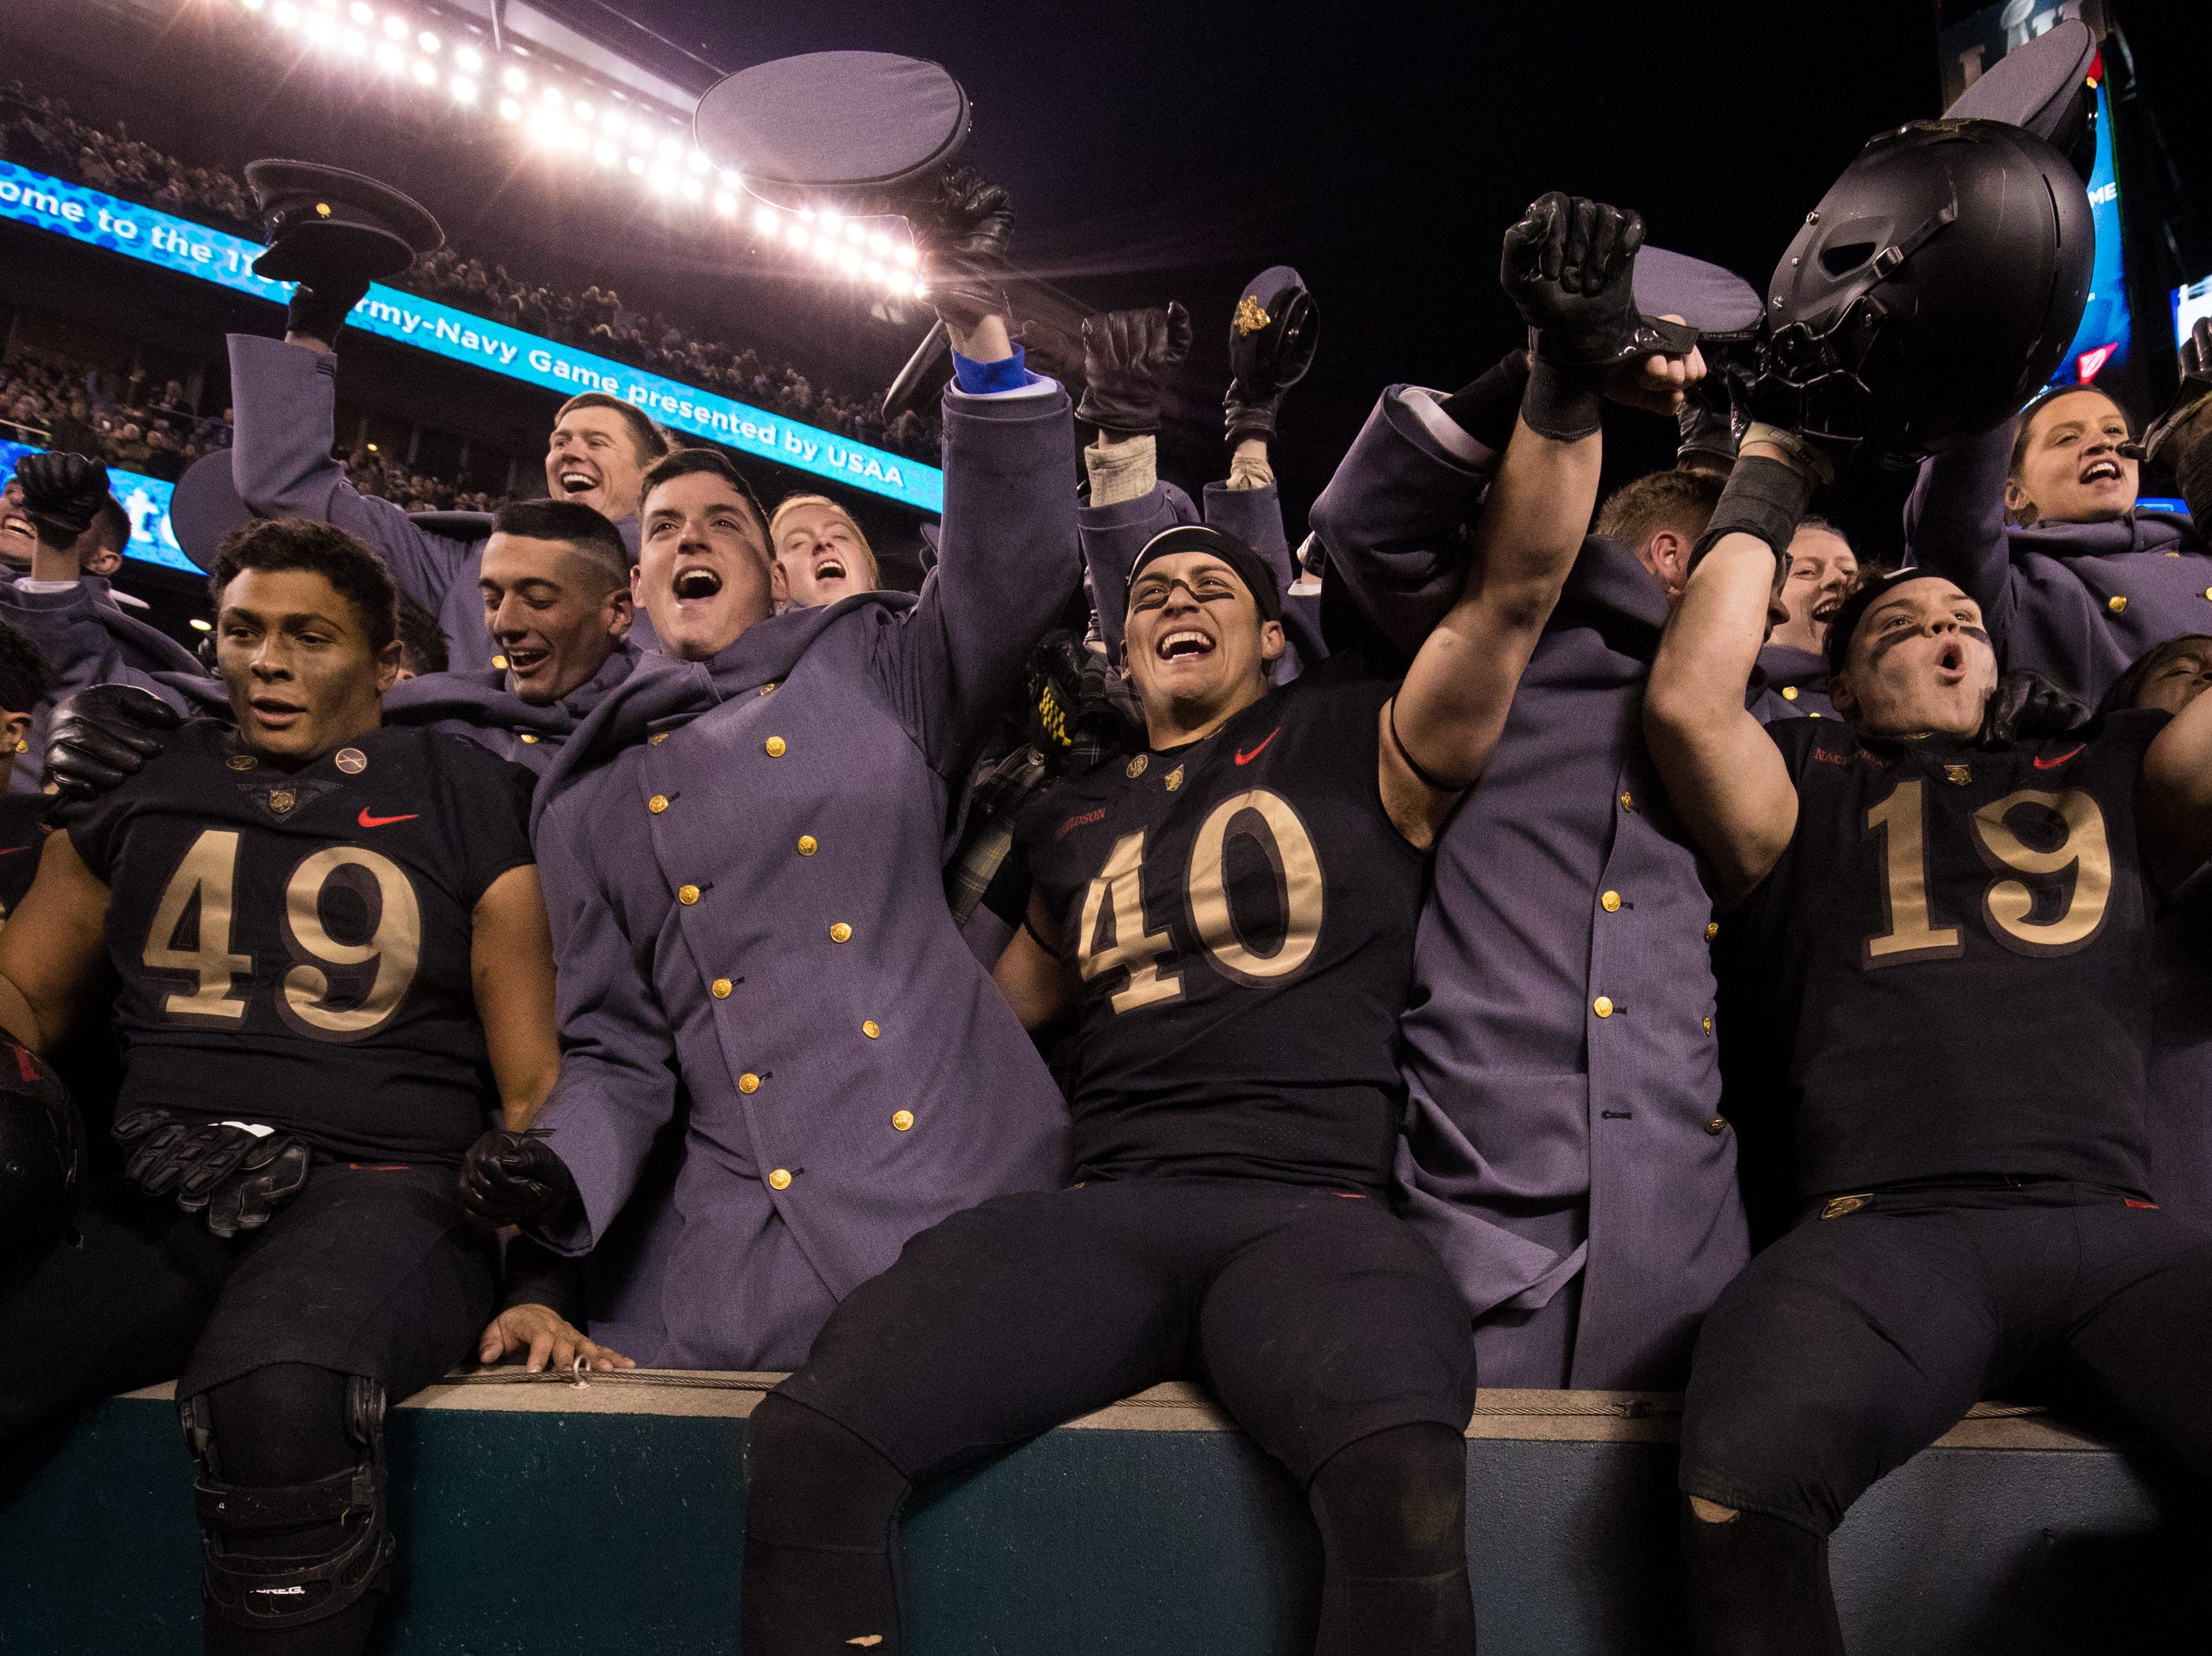 The Army Black Knights celebrate with cadets after a victory against the Navy Midshipmen at Lincoln Financial Field.